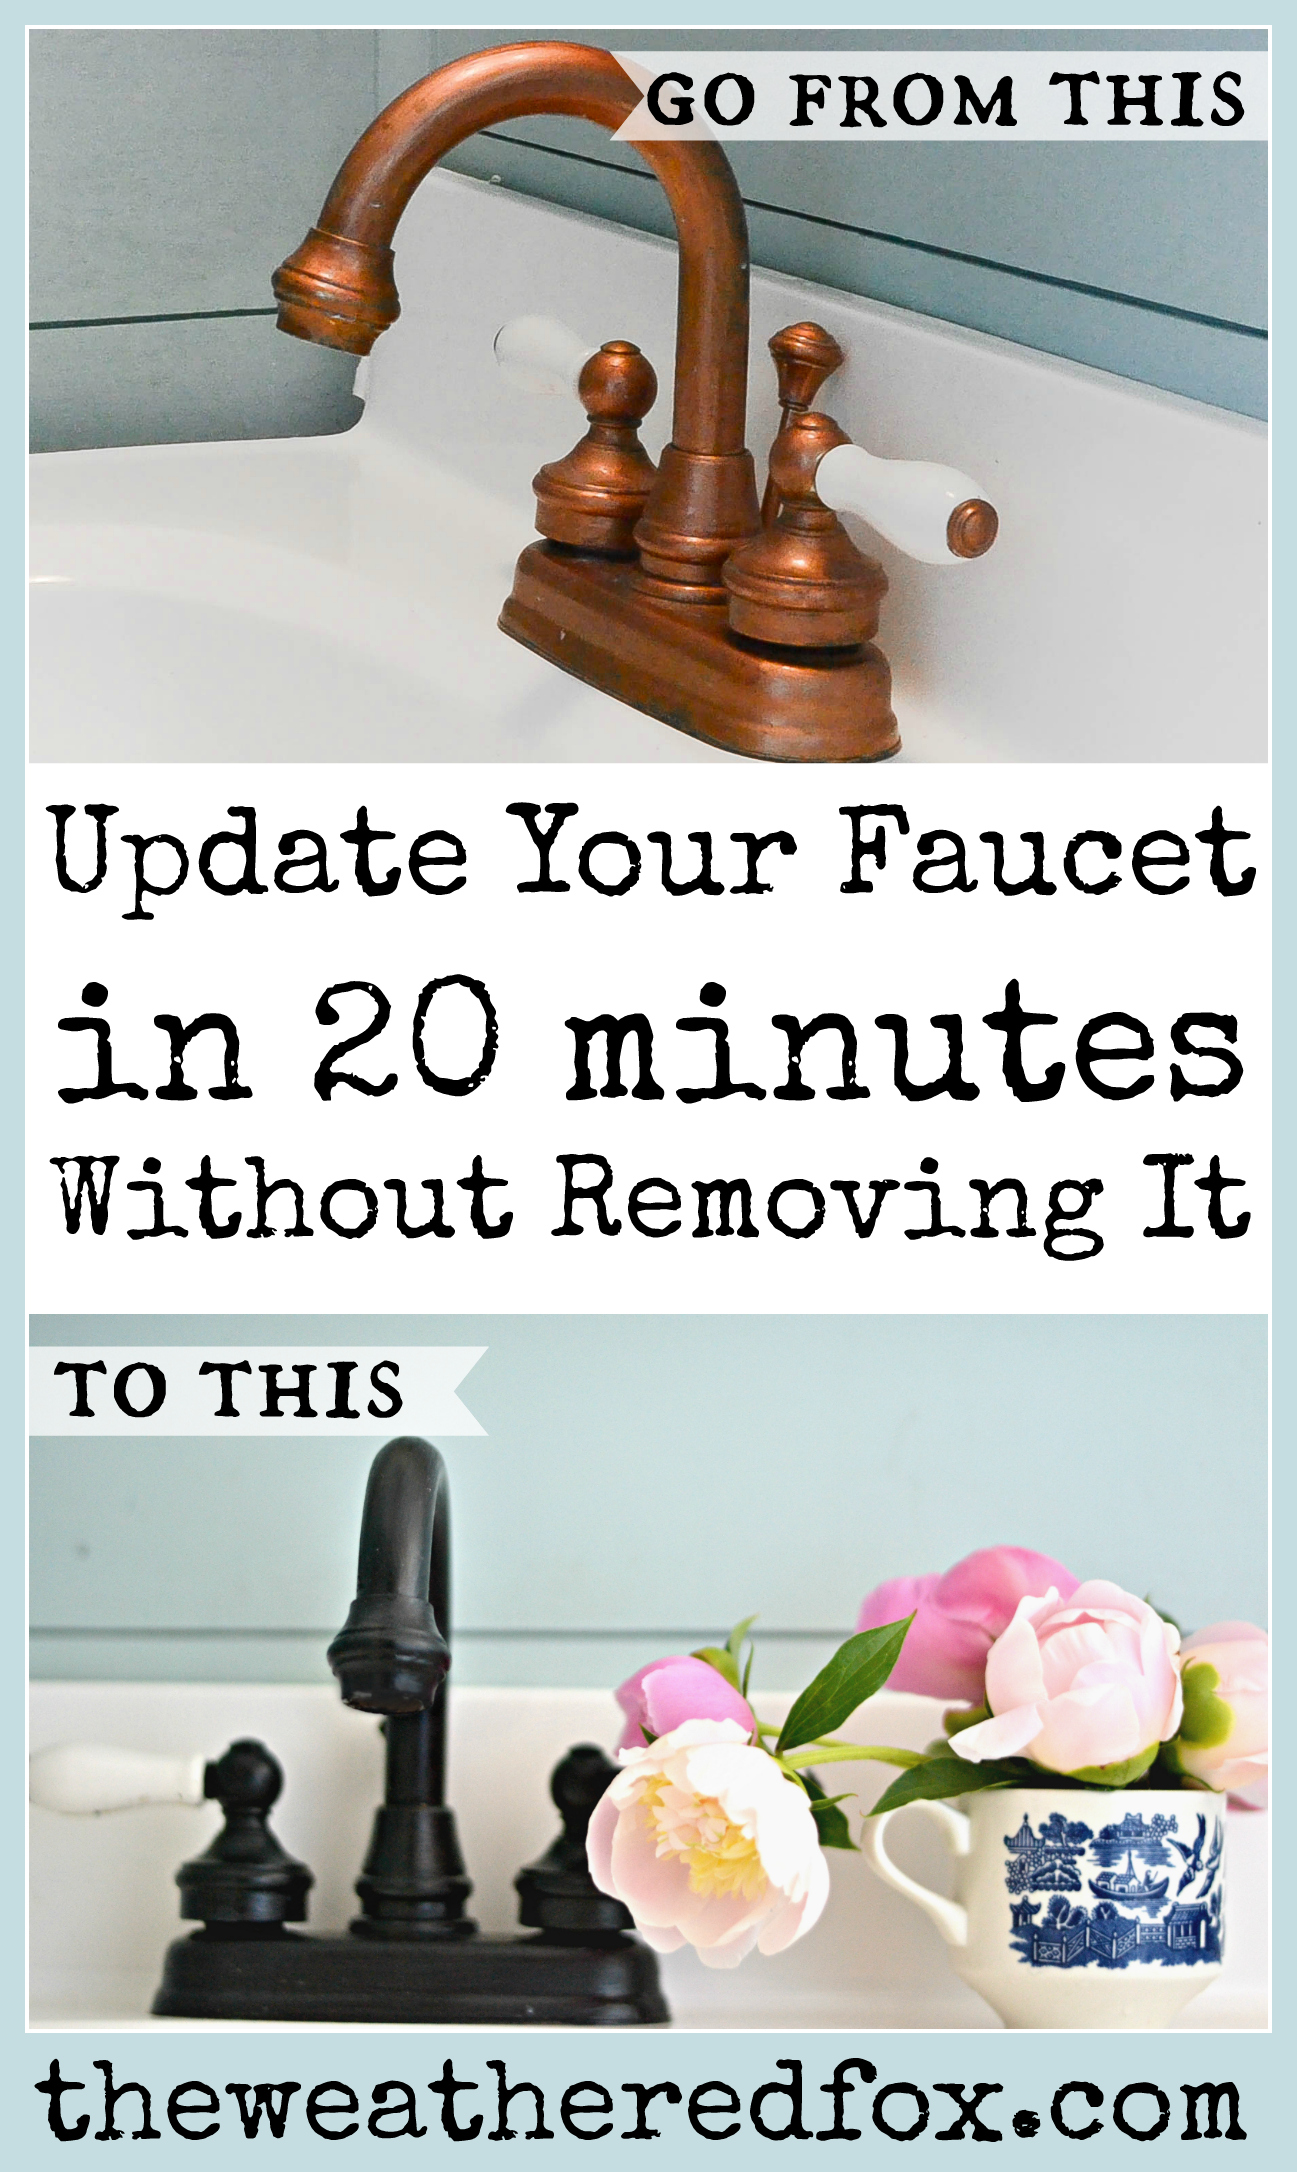 5 Easy Steps to an updated painted faucet. How to paint a faucet. Paint your faucet while it's still on the sink. This is a super fast way to add value to your home! Saving this for later!